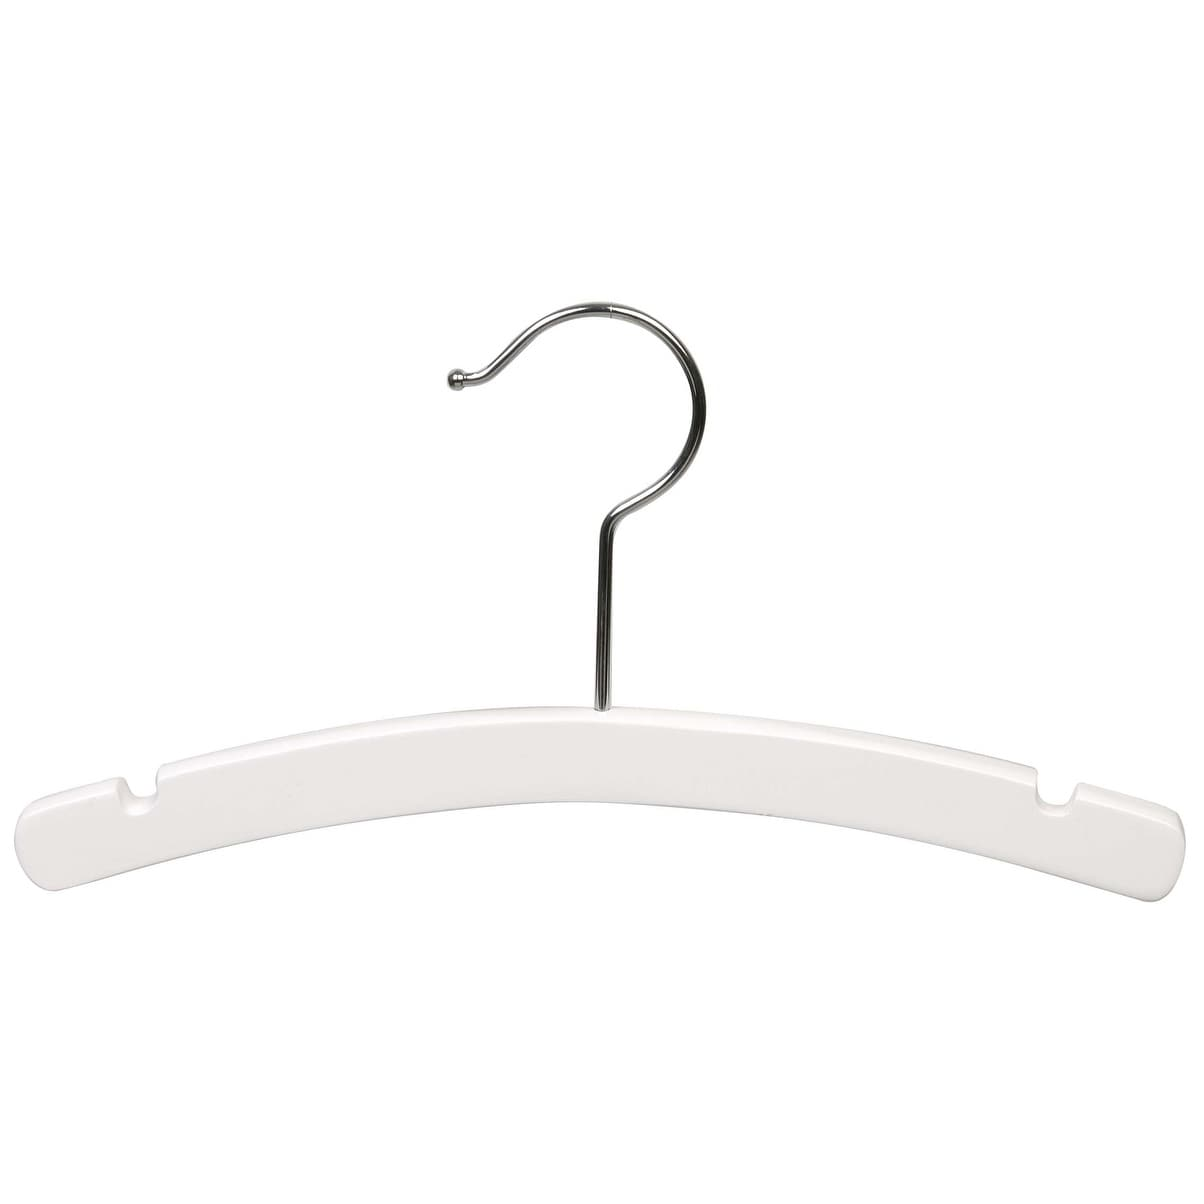 White Arched Wooden Baby Hanger, 10 Inch Wood Top Hangers with Chrome  Swivel Hook for Infant Clothes or Onesie - Free Shipping On Orders Over $45  ...